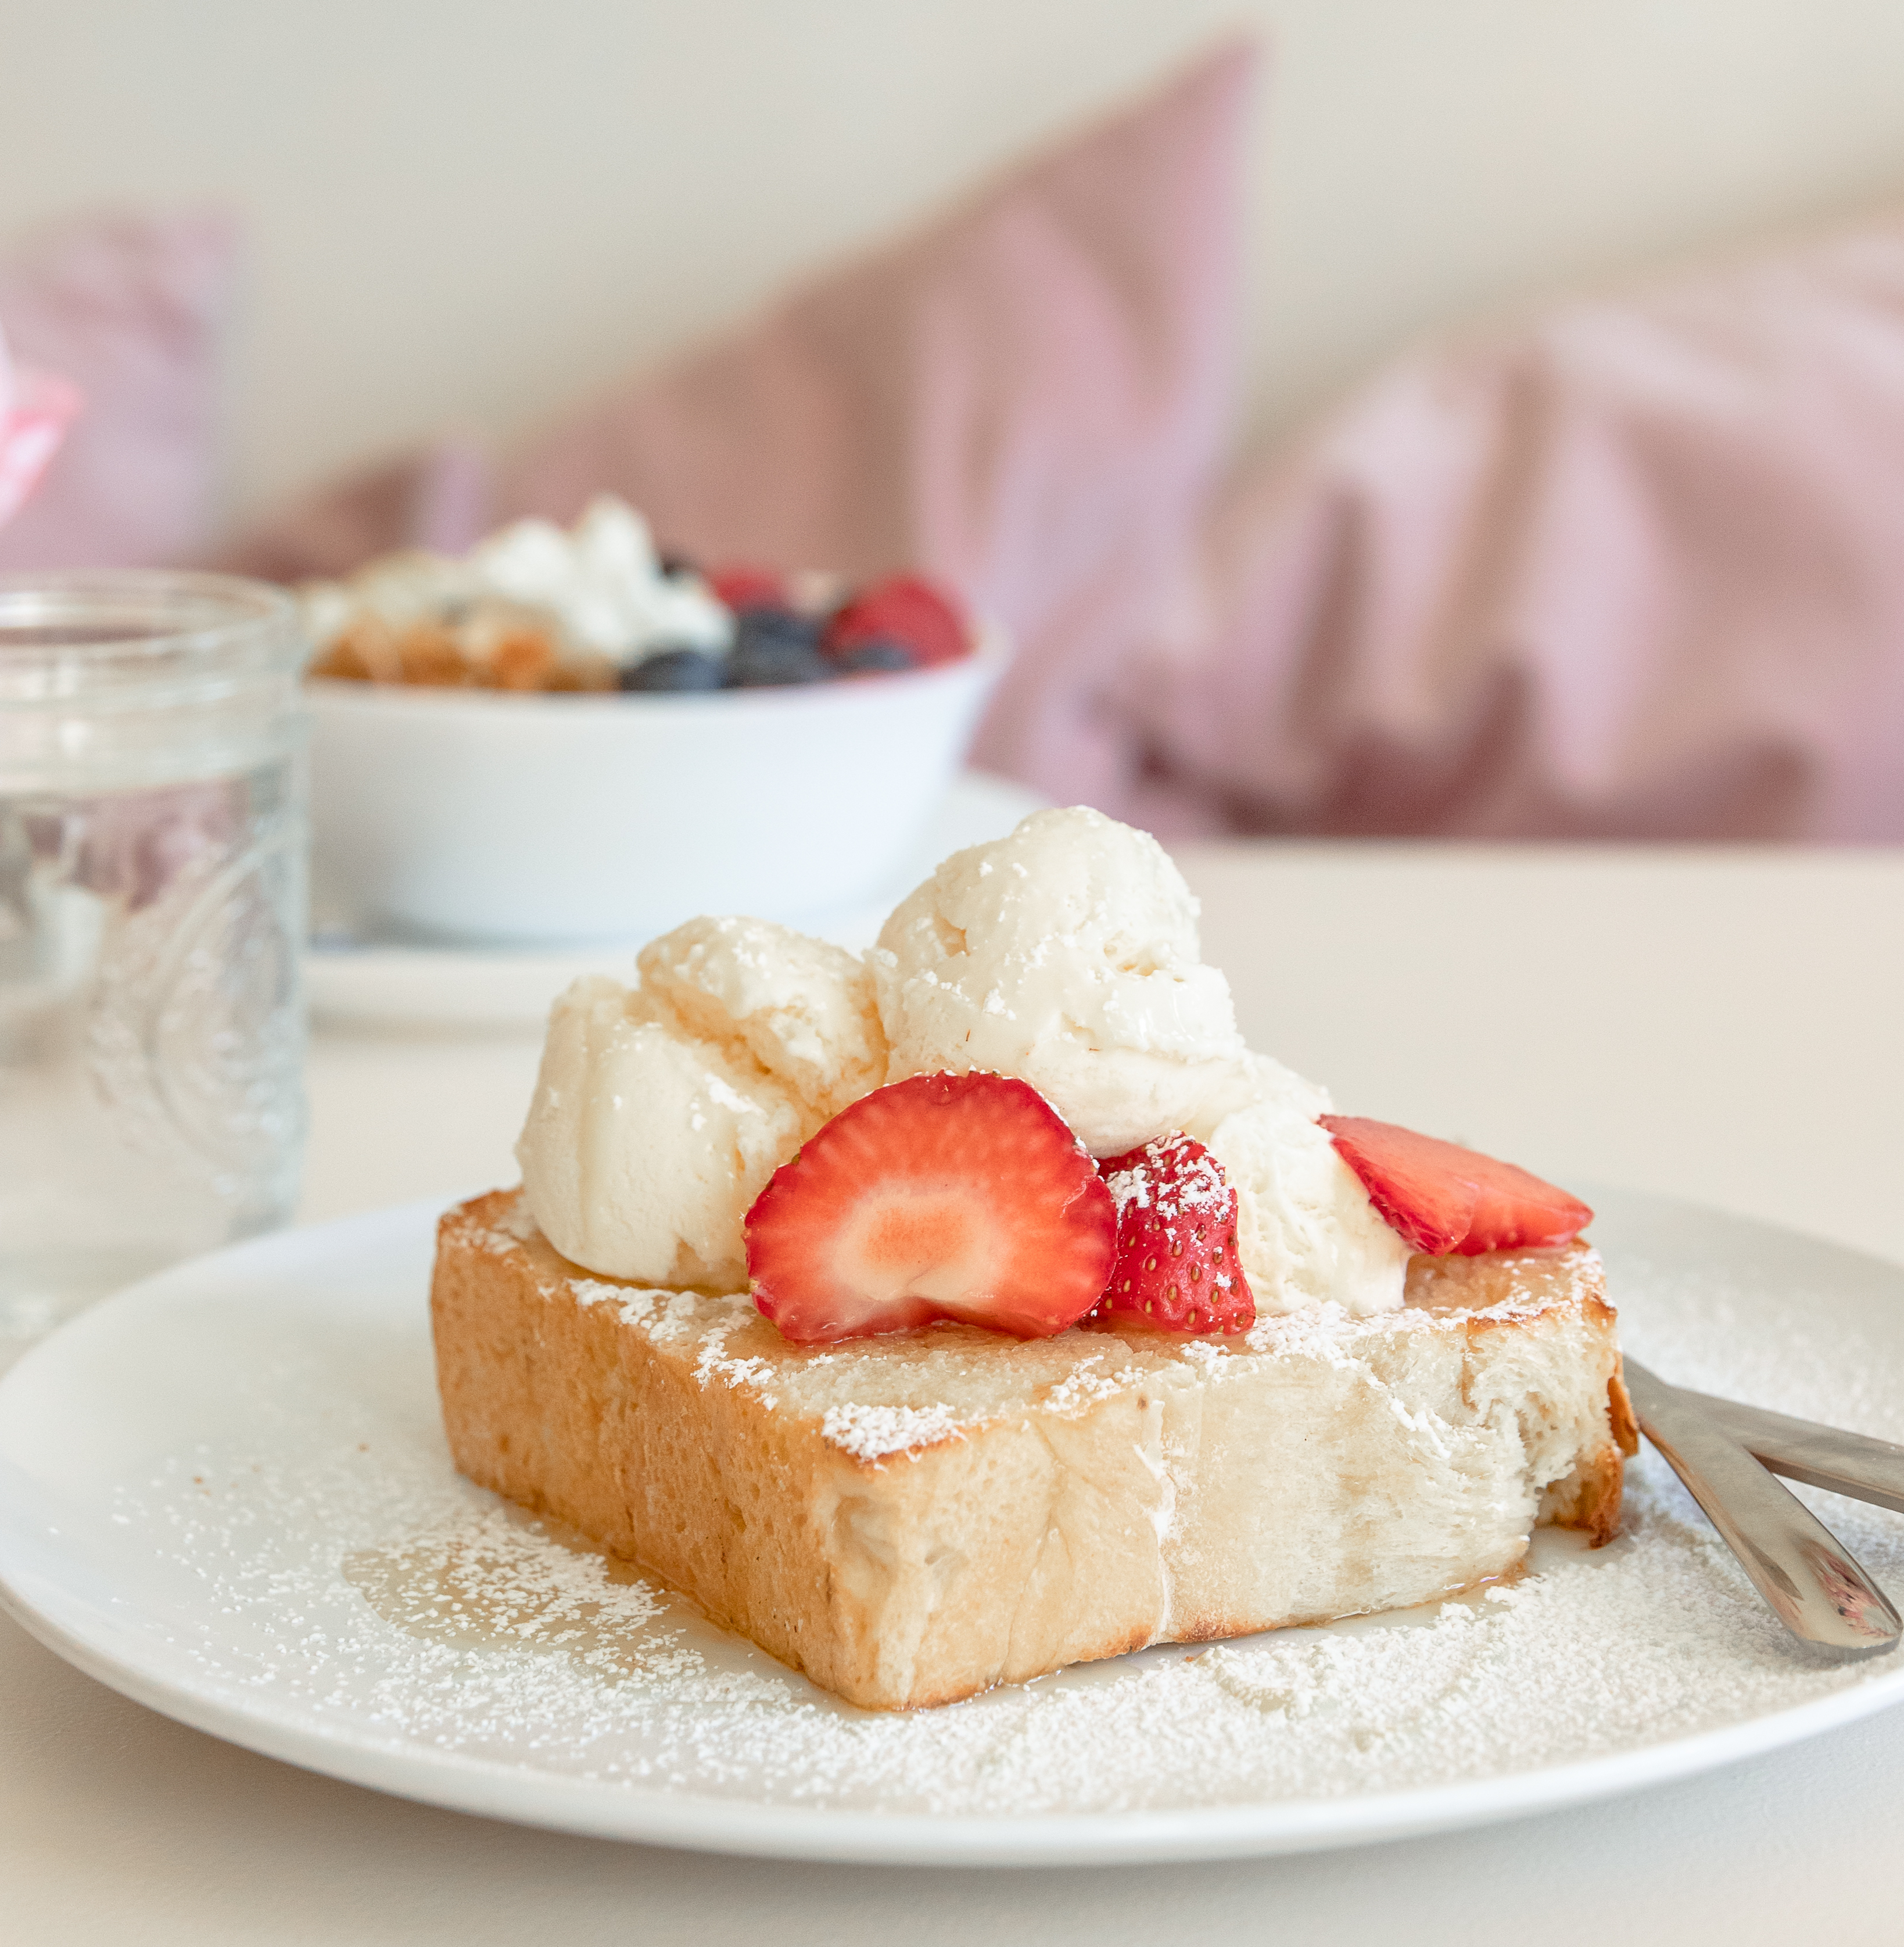 Thick slice of white bread topped with ice cream, strawberries, and a drizzle of honey